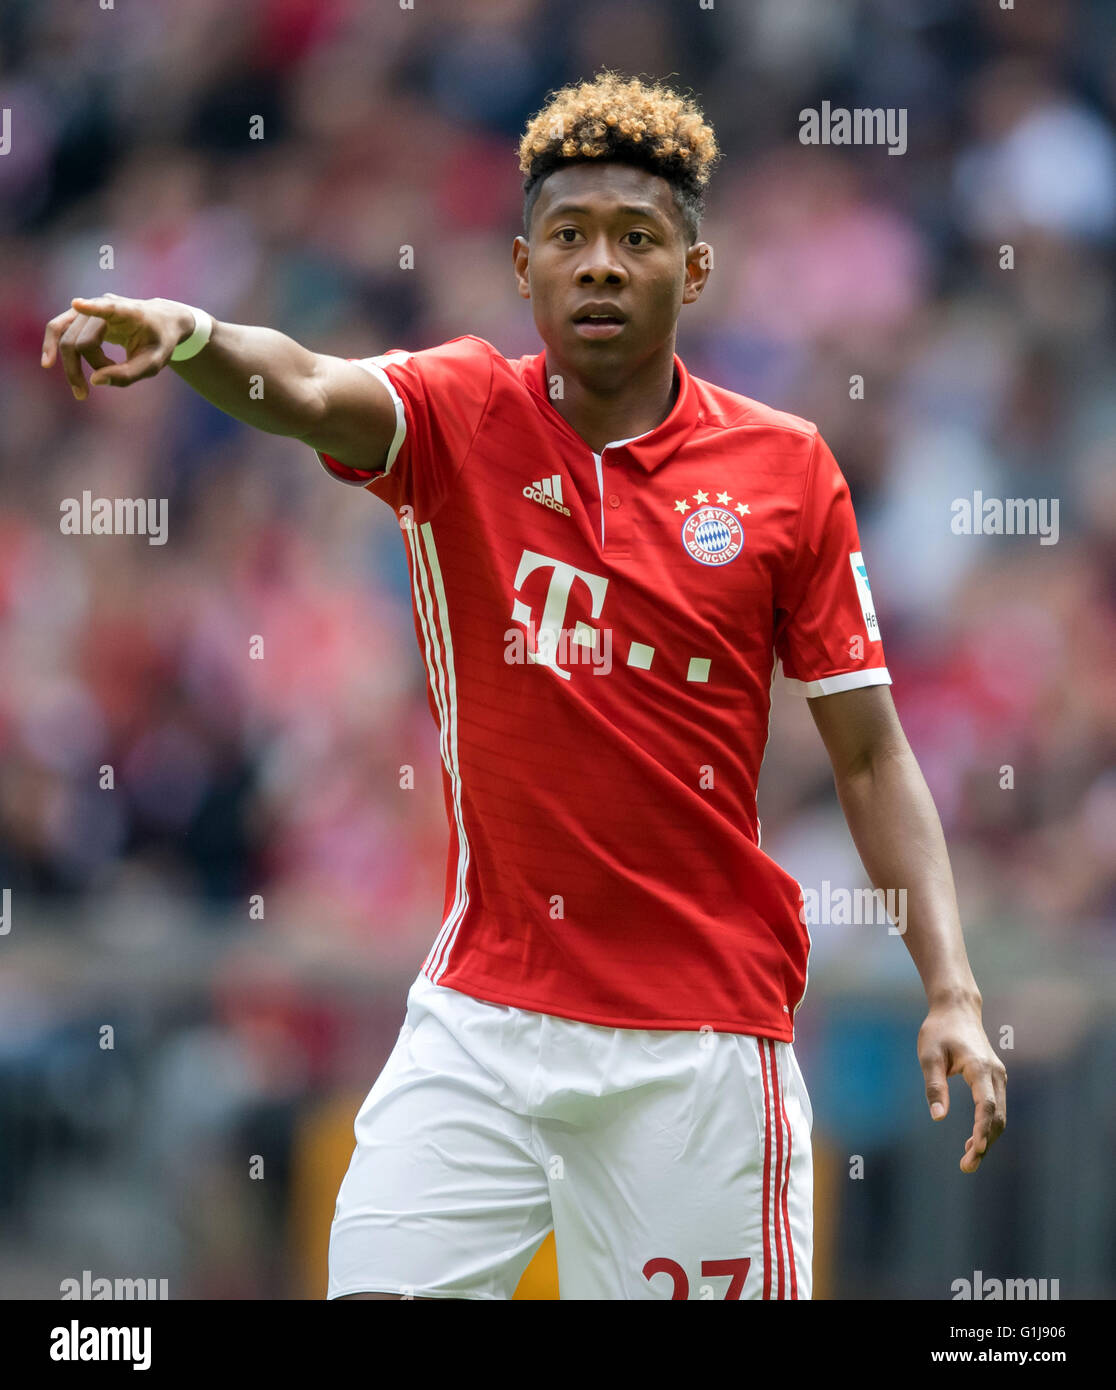 Munich s David Alaba in action during the German Bundesliga soccer